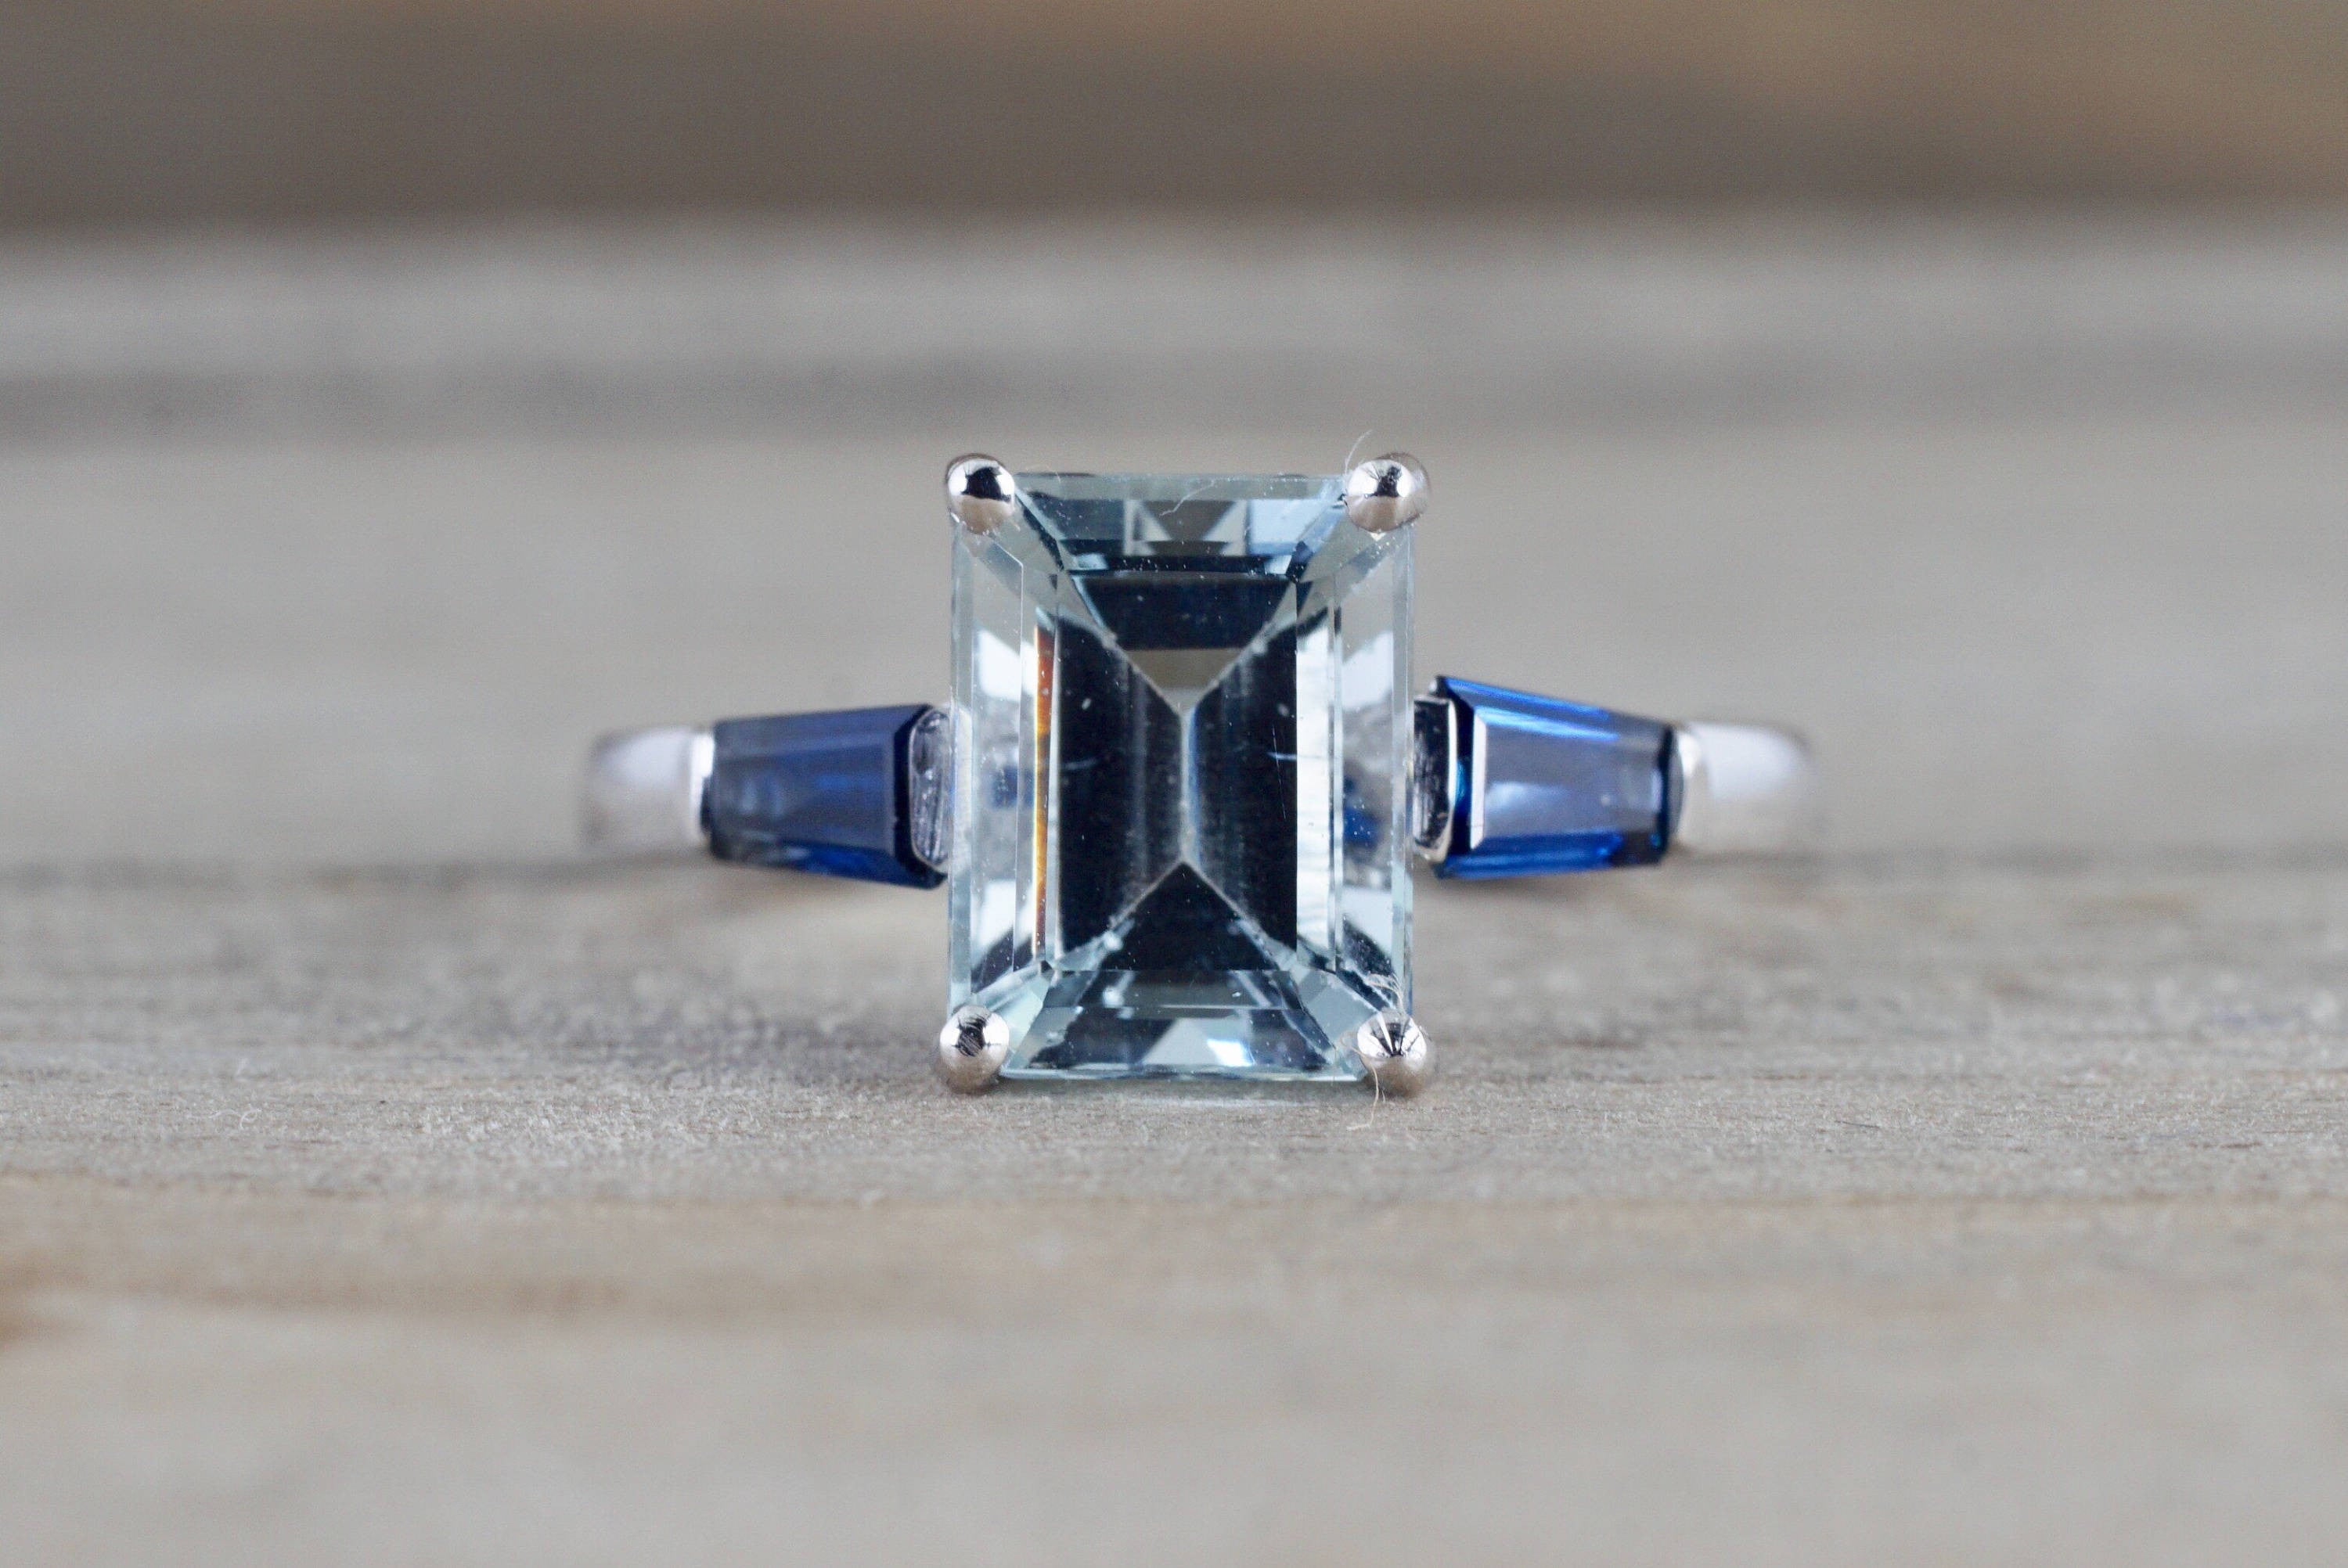 14k White gold Emerald Aquamarine with Blue Sapphire Baguette Future Past Present Engagement Ring